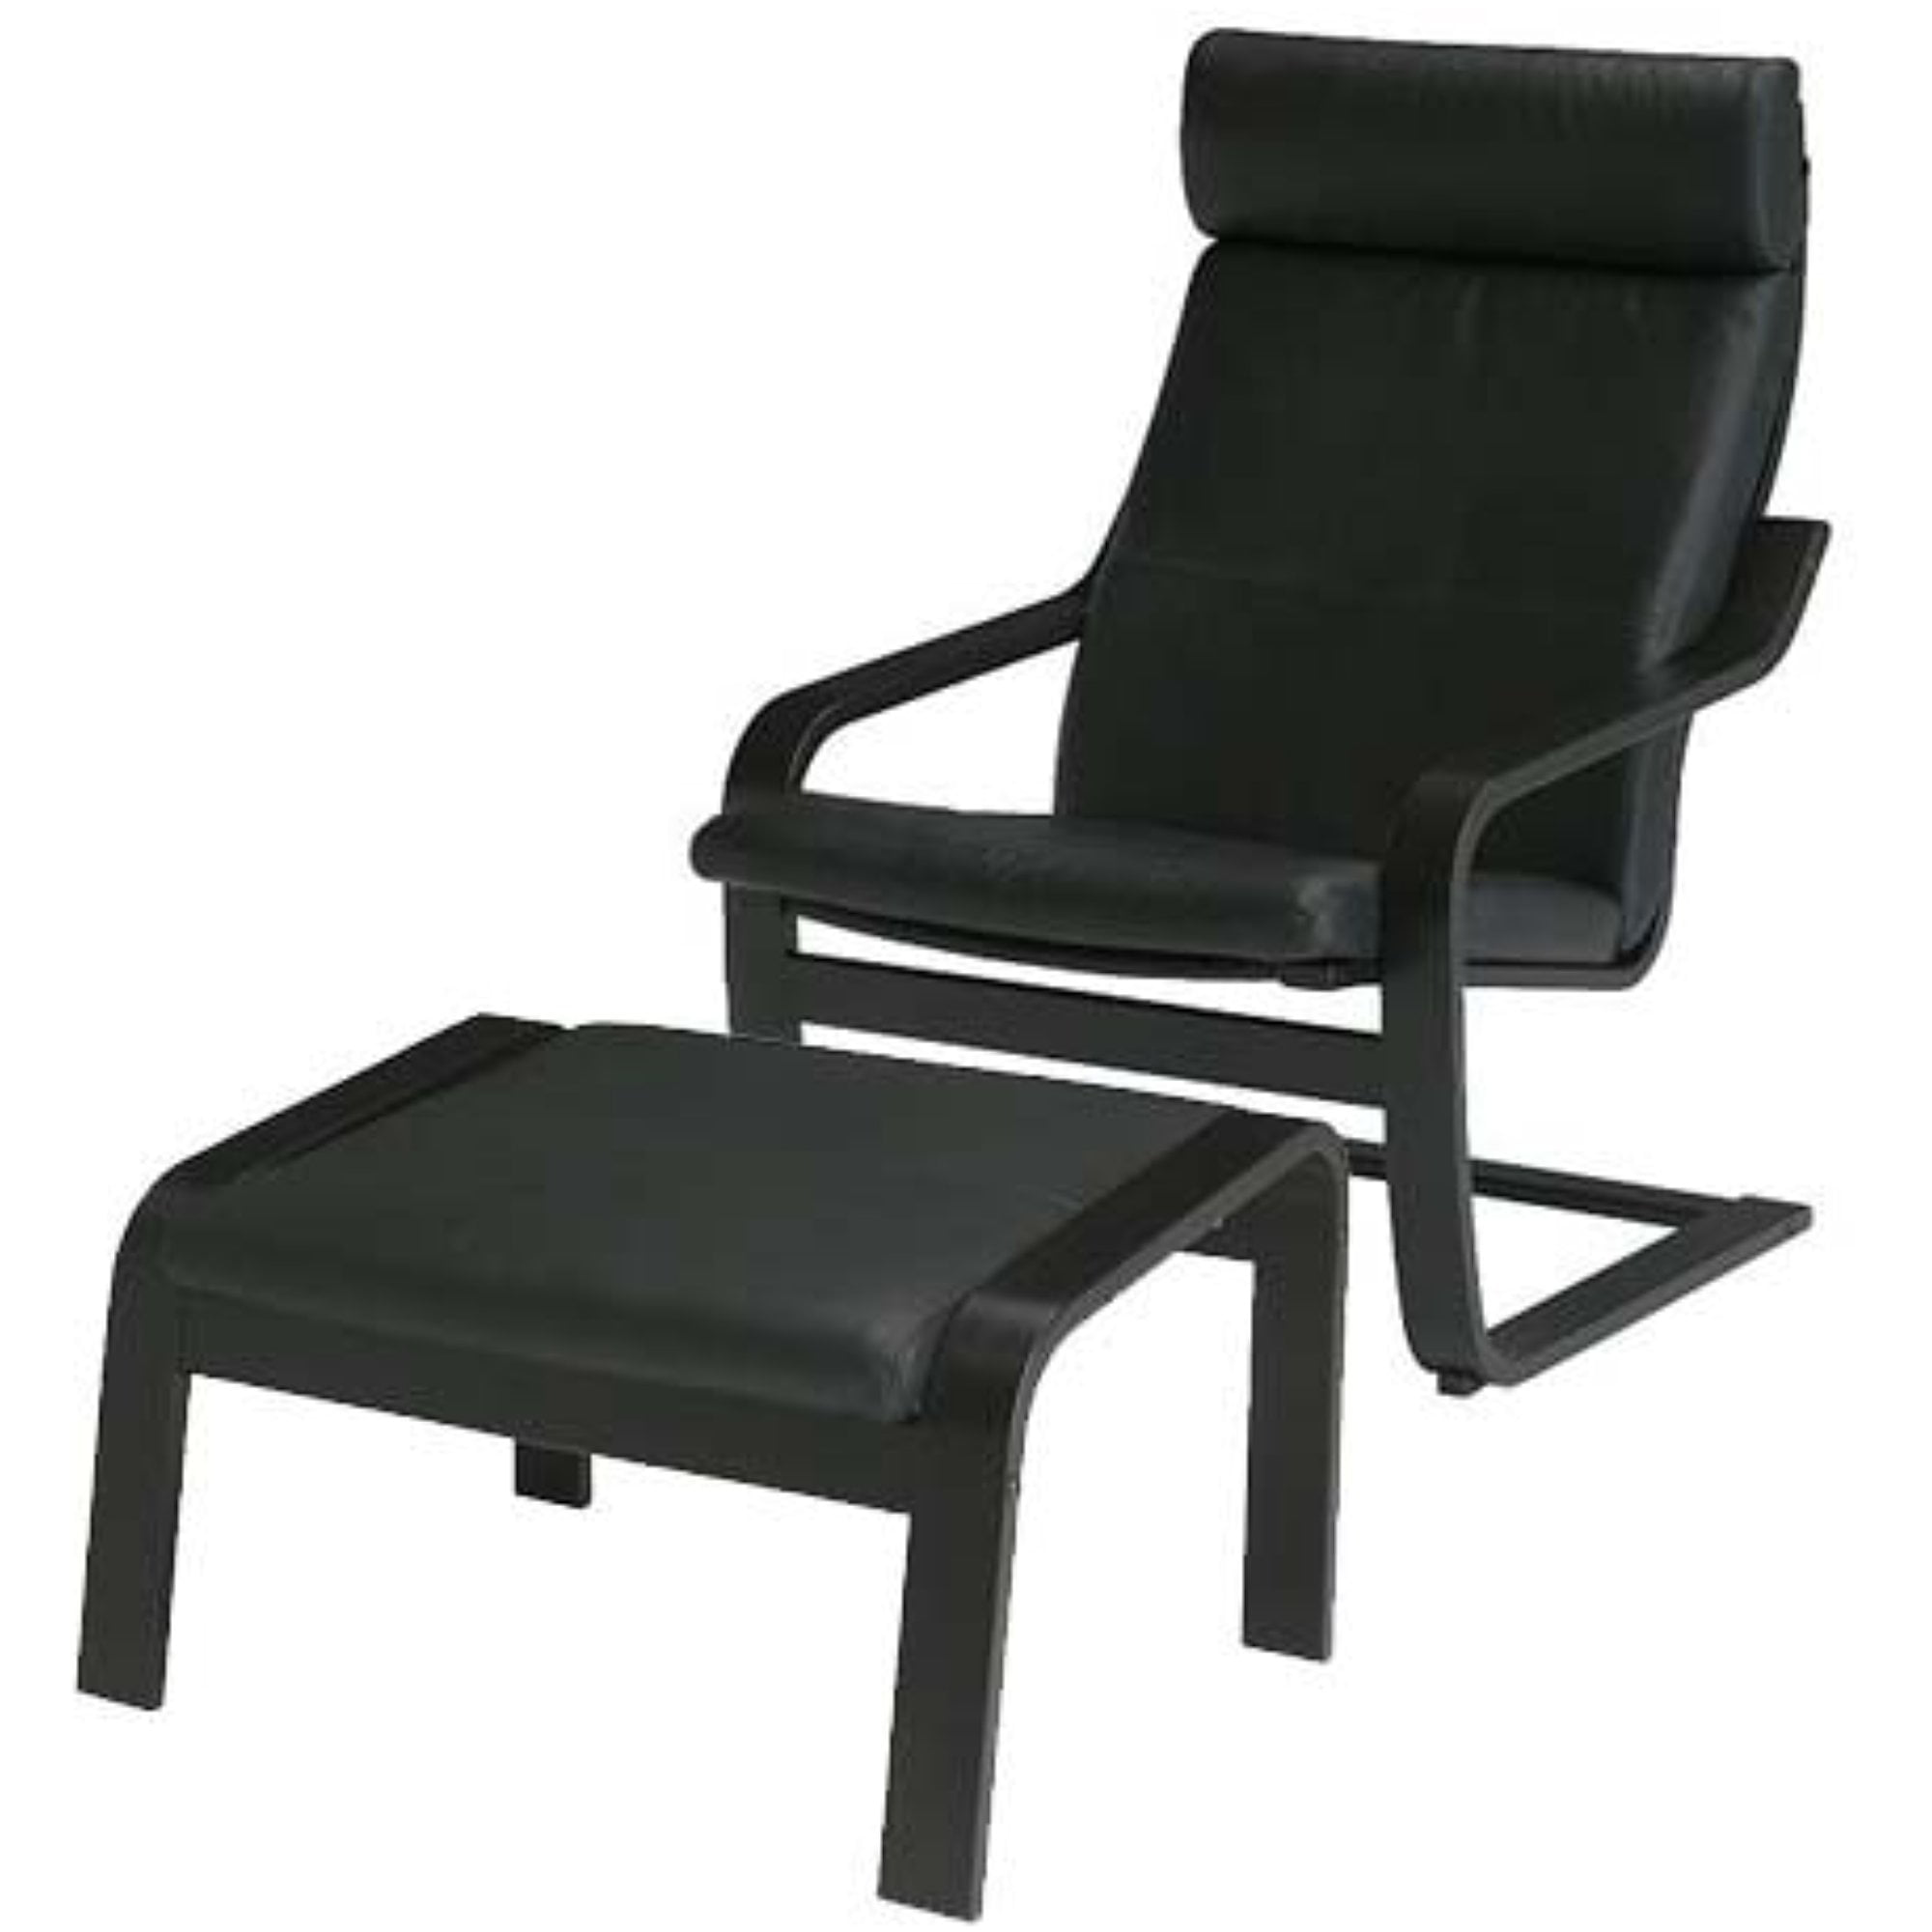 Ikea Poang Chair Armchair and Footstool Set with Black ...